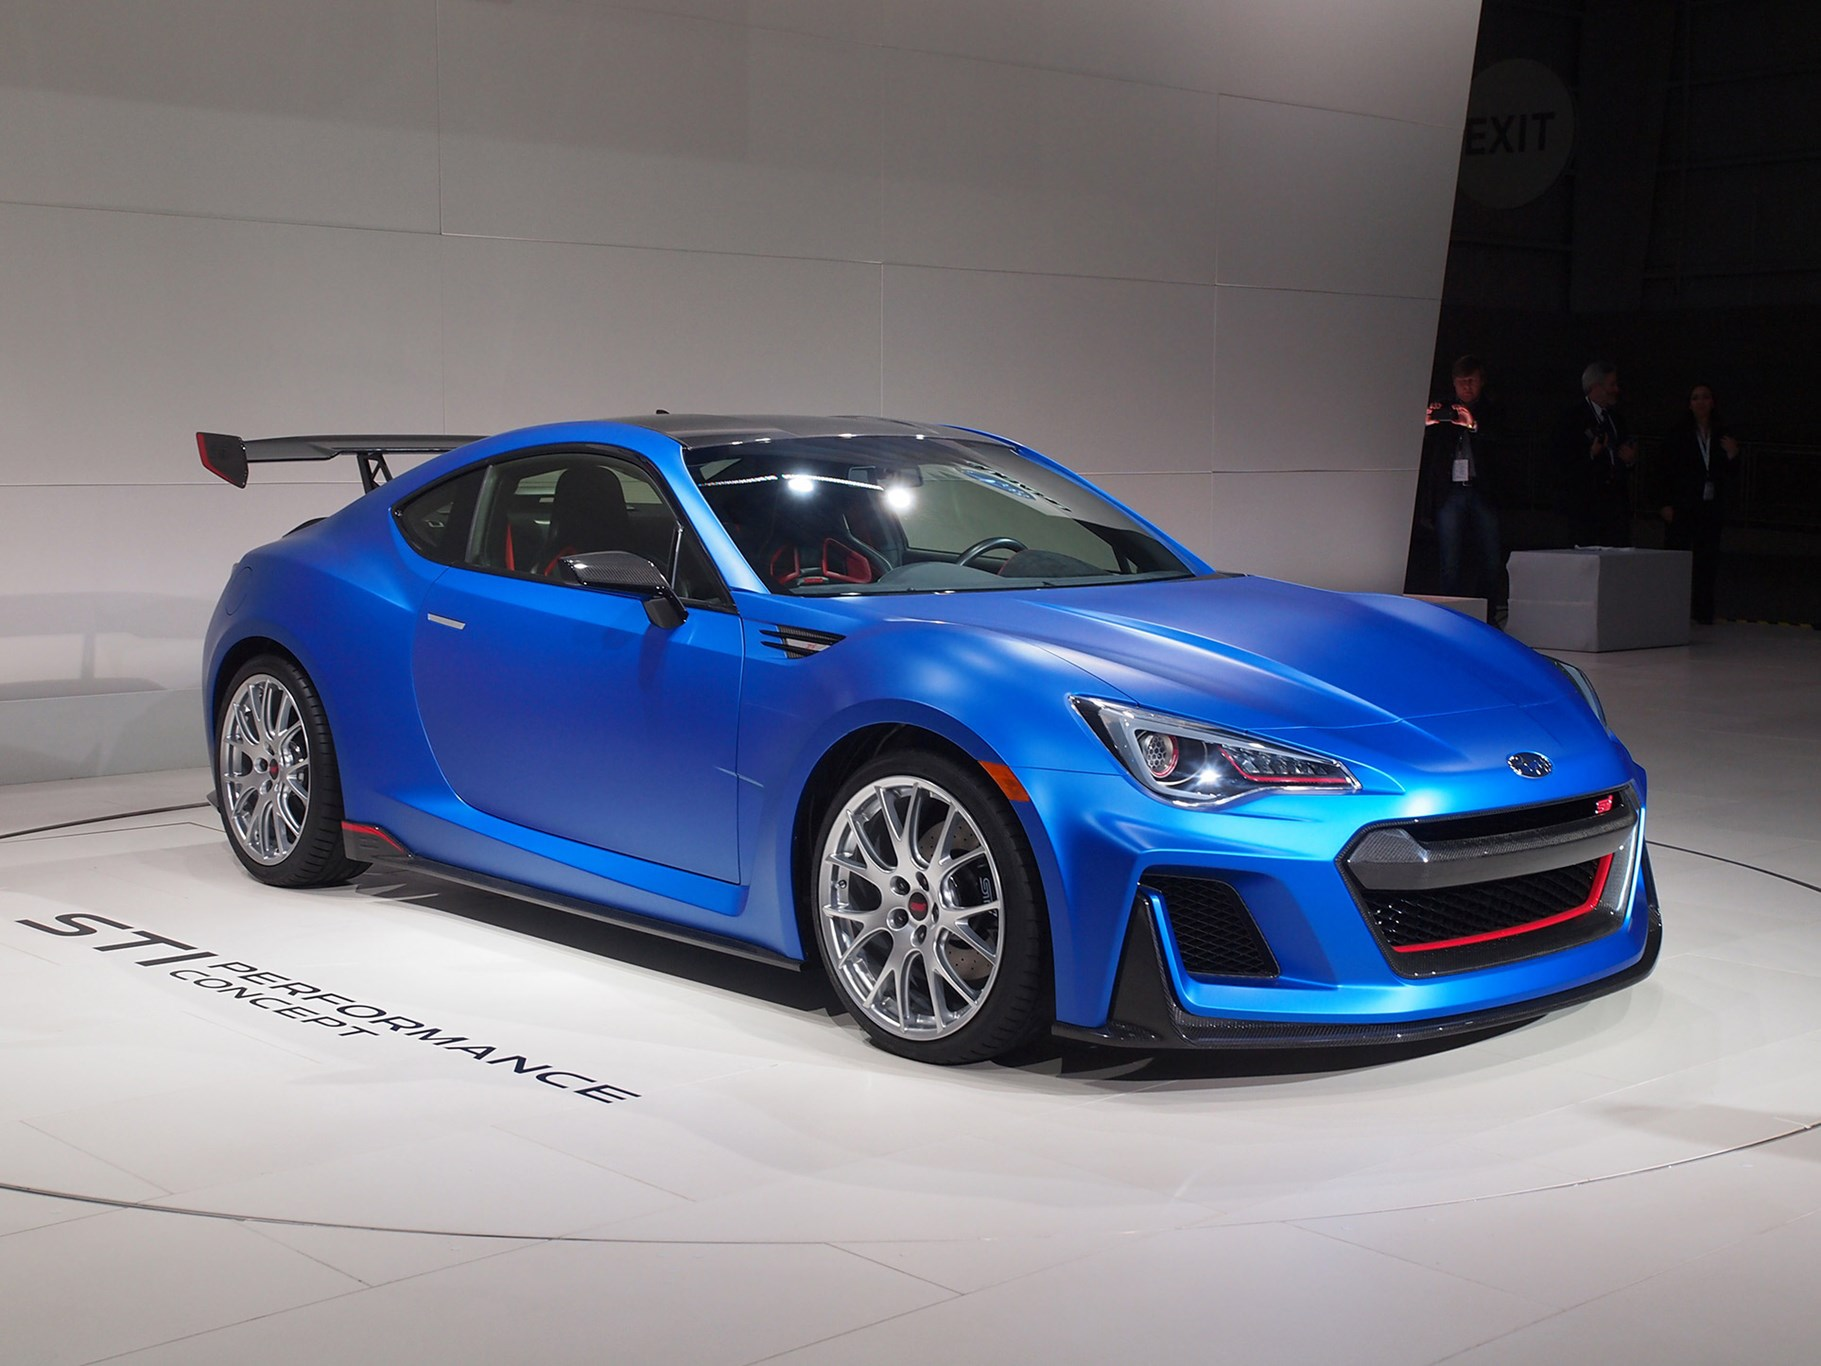 subaru brz by sti 300bhp coupe muscles into new york by. Black Bedroom Furniture Sets. Home Design Ideas